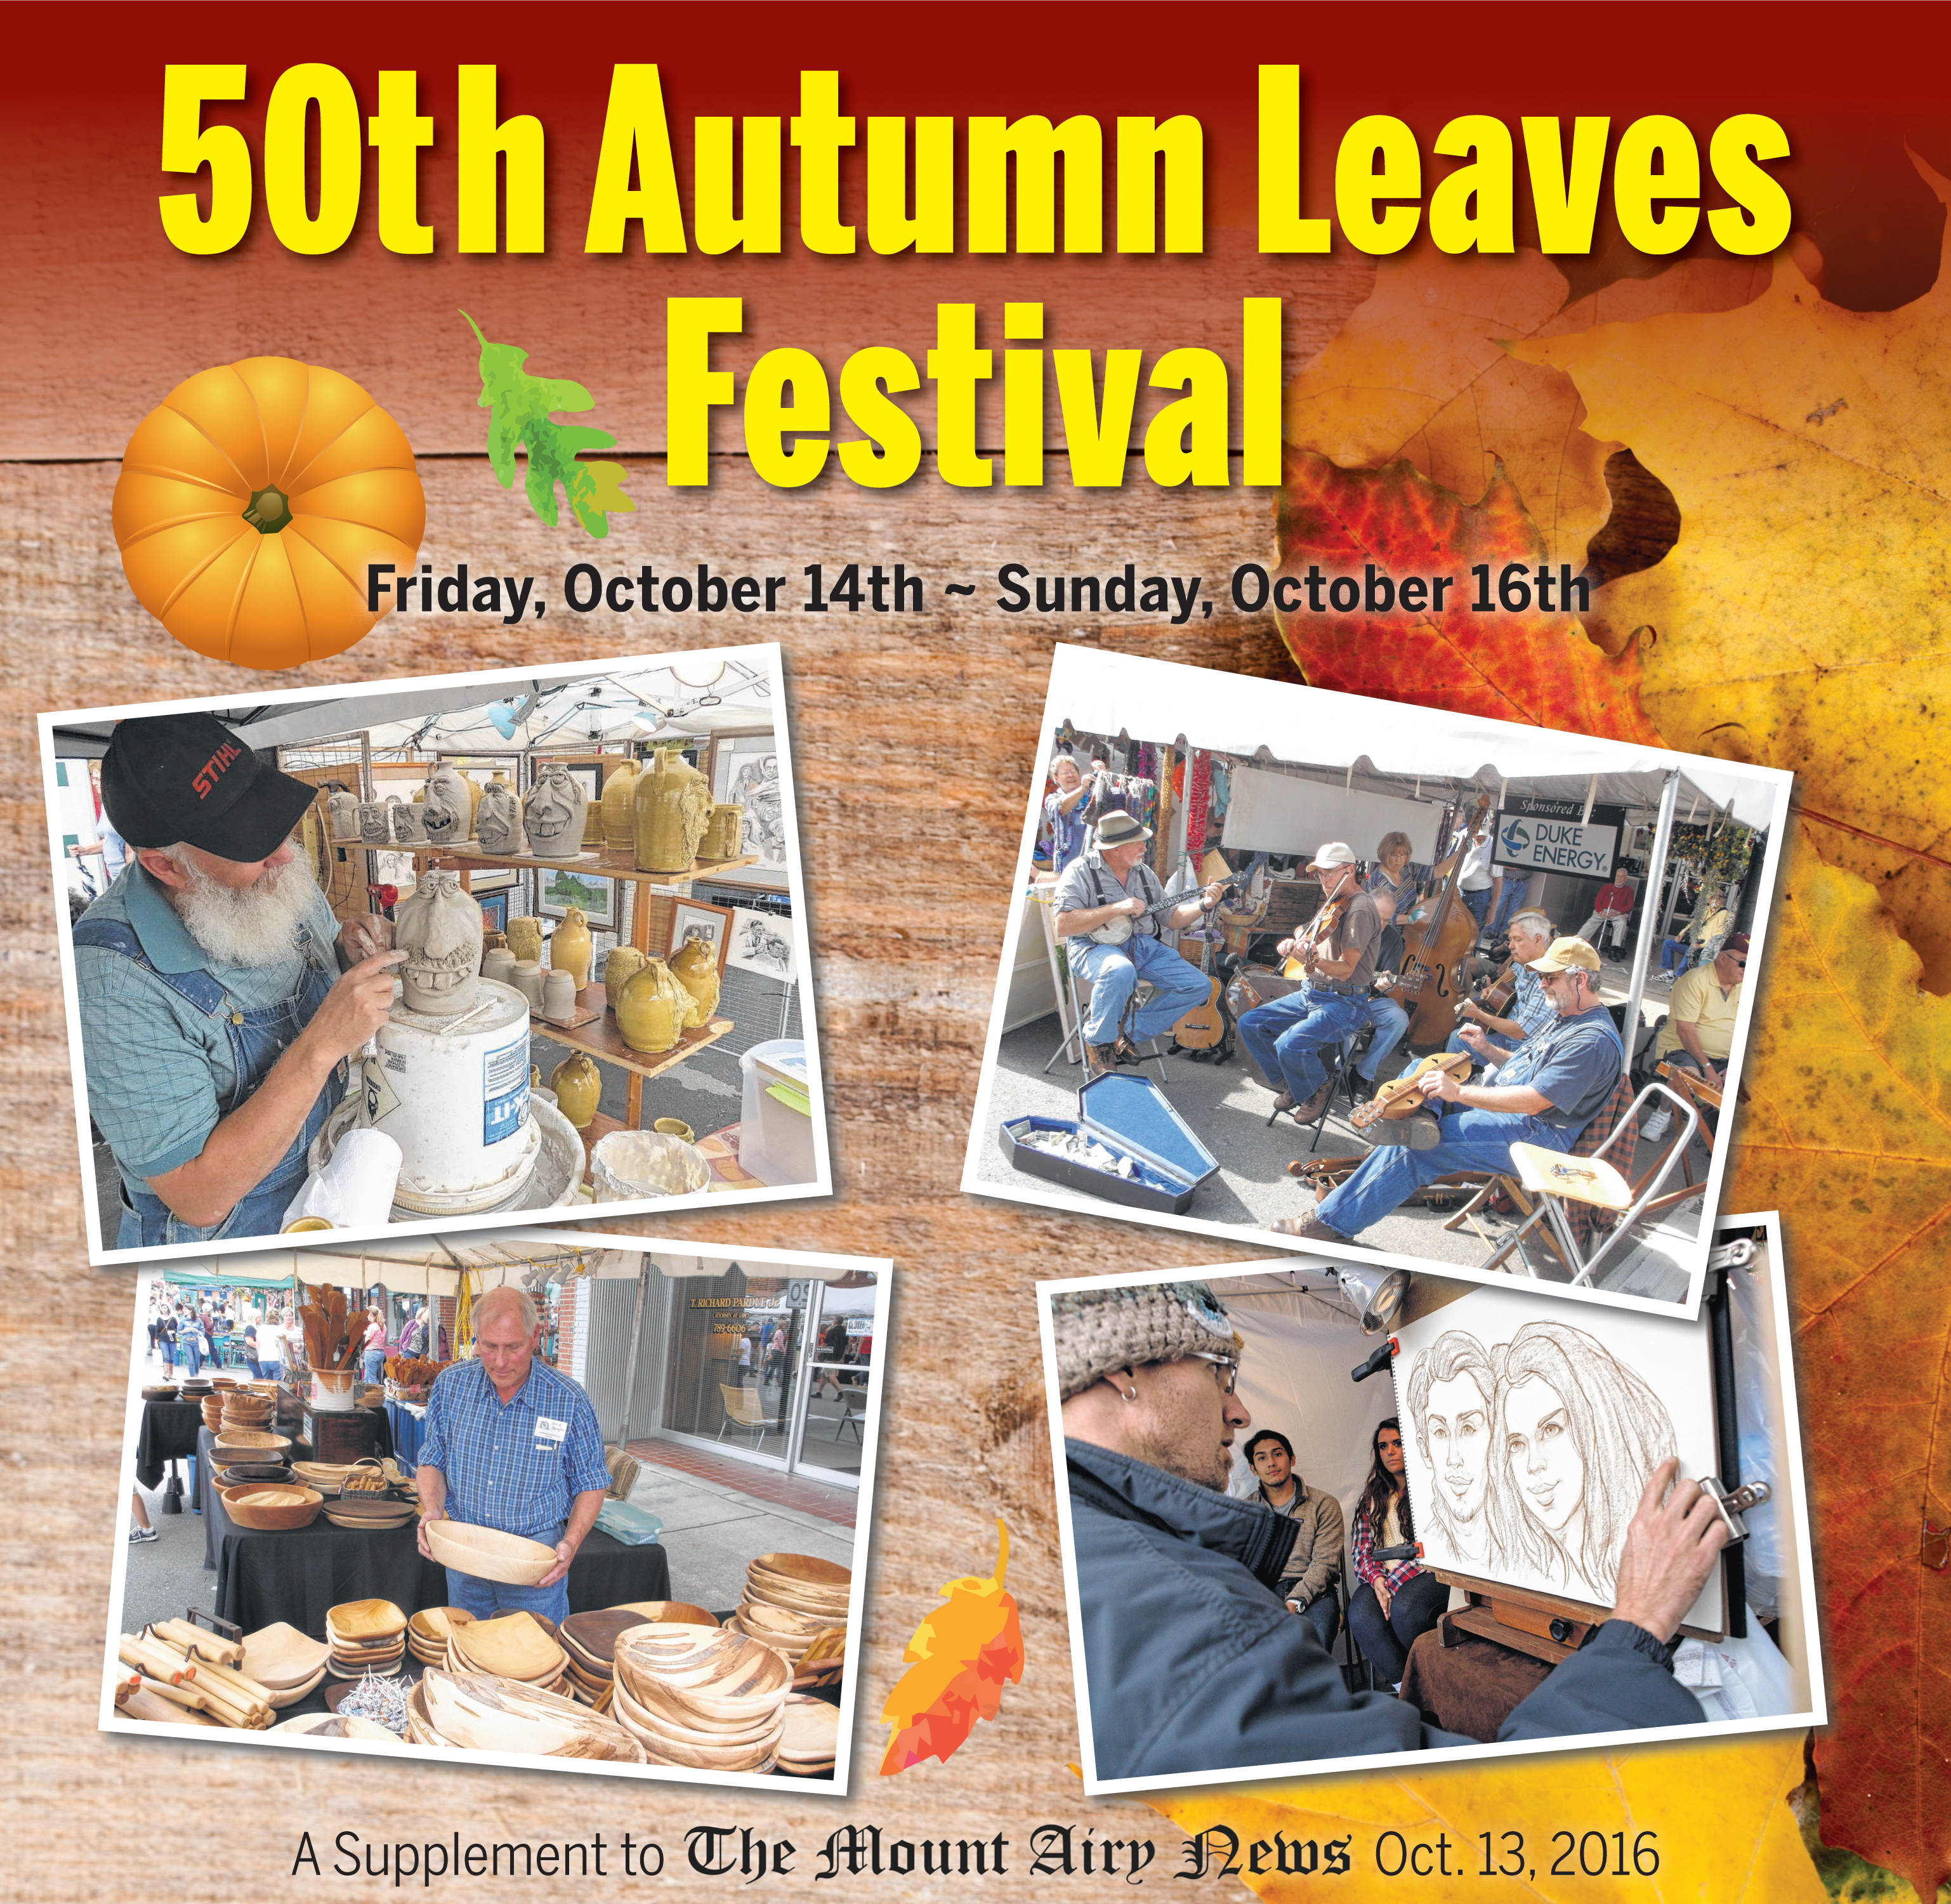 50th Autumn Leaves Festival 2016